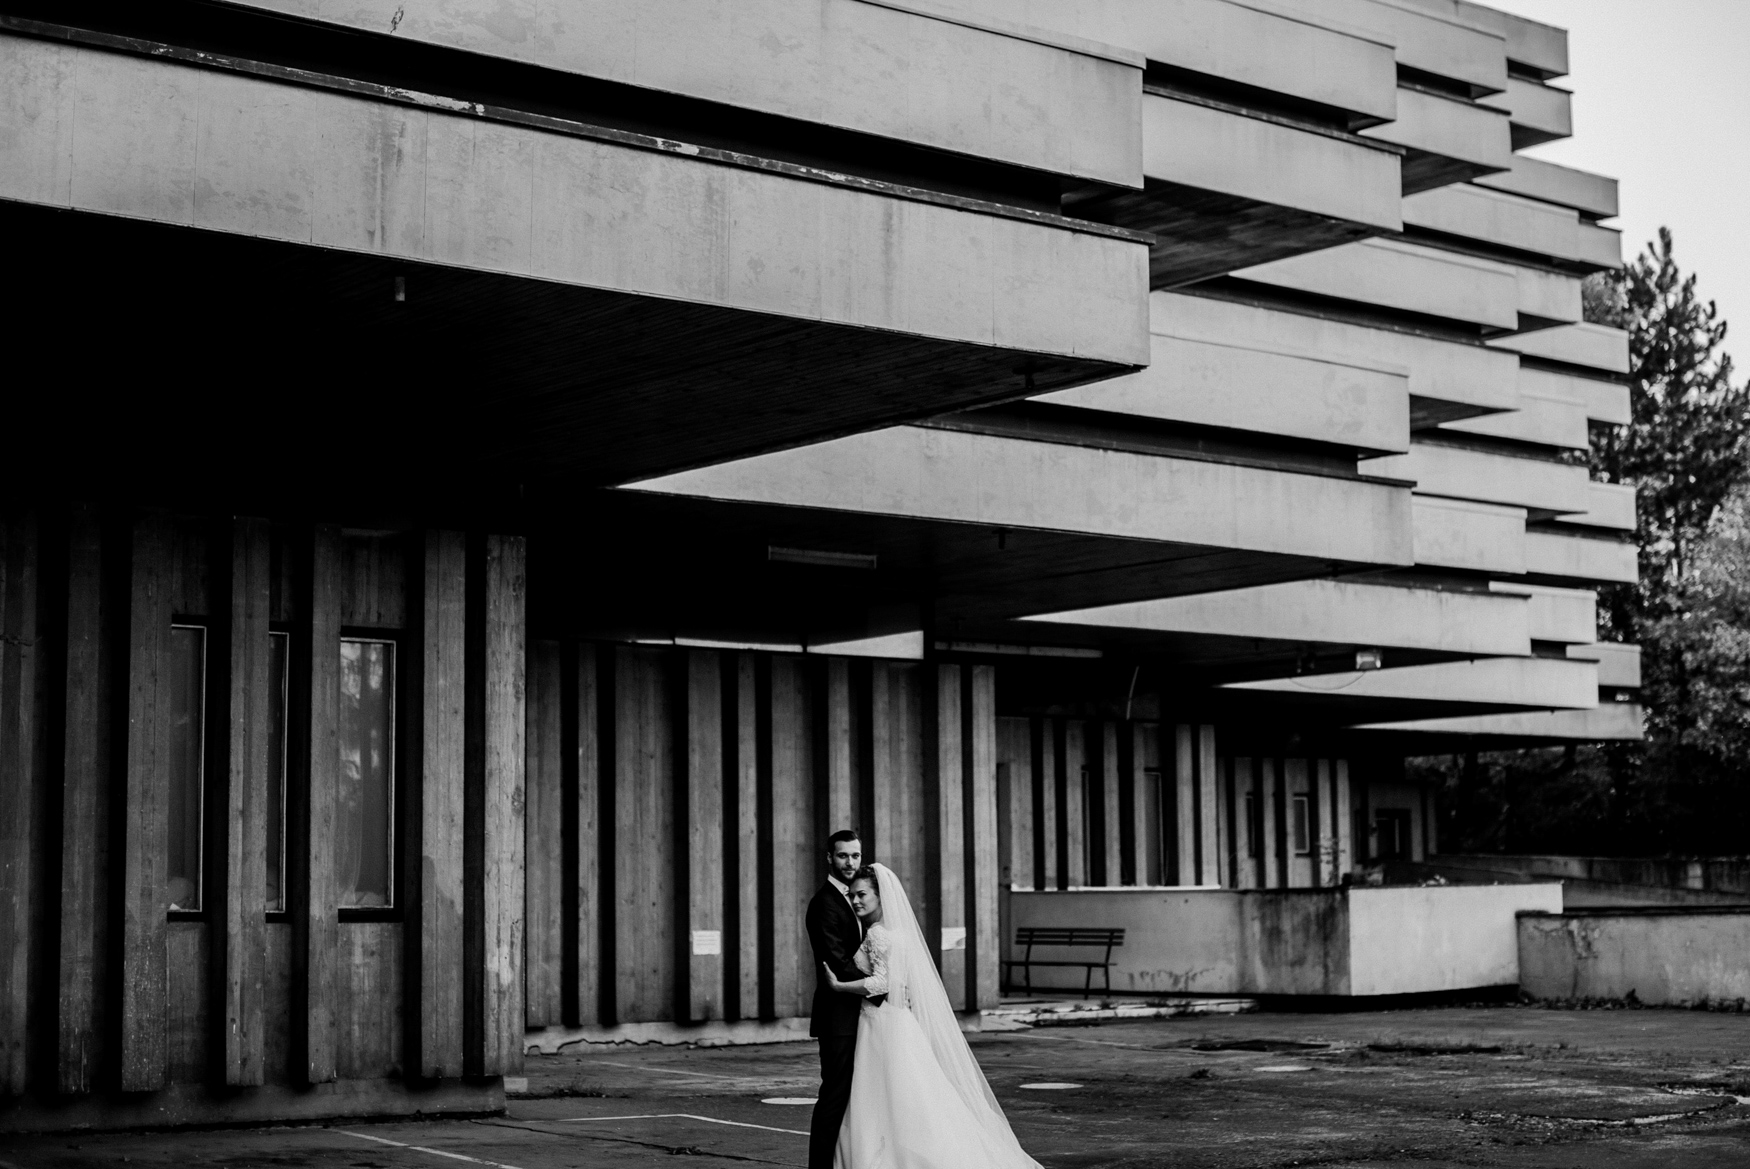 bestof2017_042 minimalist wedding photography.jpg